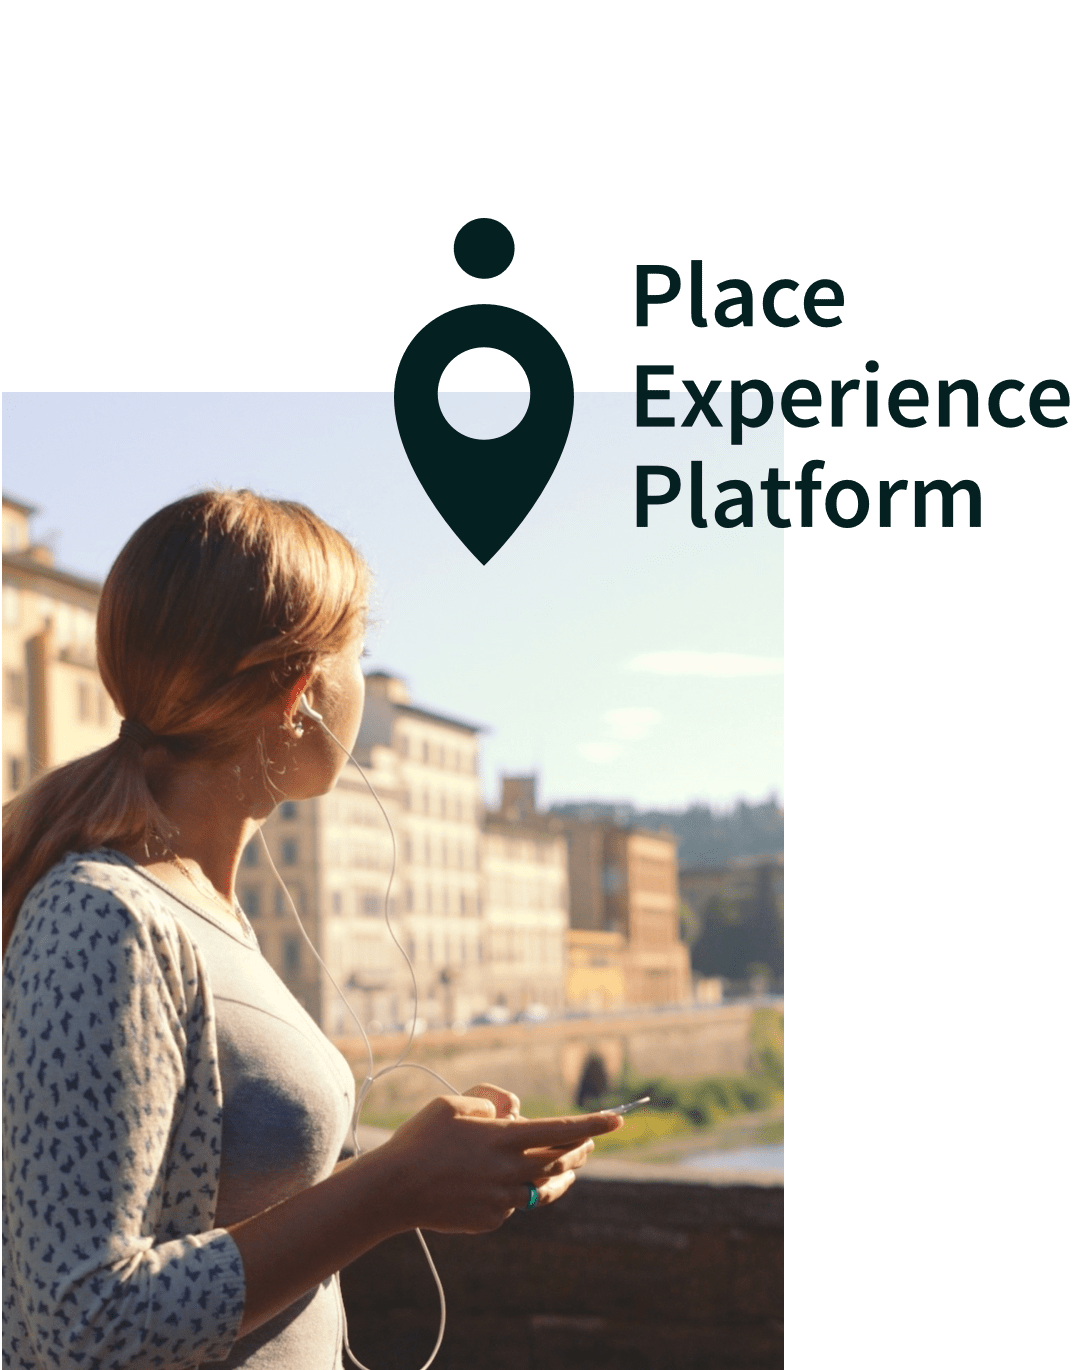 Place Experience Platform logo, overlaid on a photo of a woman wearing headphones, holding a phone, looking out over at a city sunset.